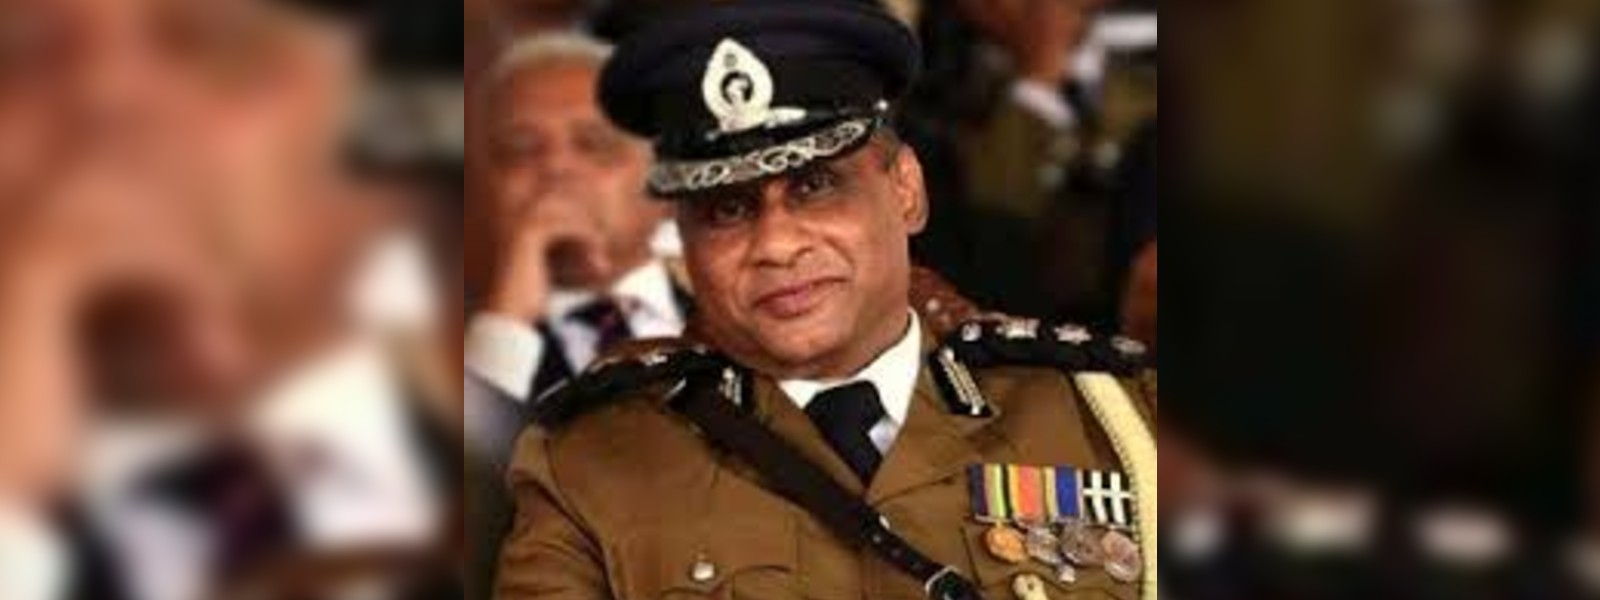 C. D. Wickramaratne assumes duties as the newly appointed Inspector General of Police